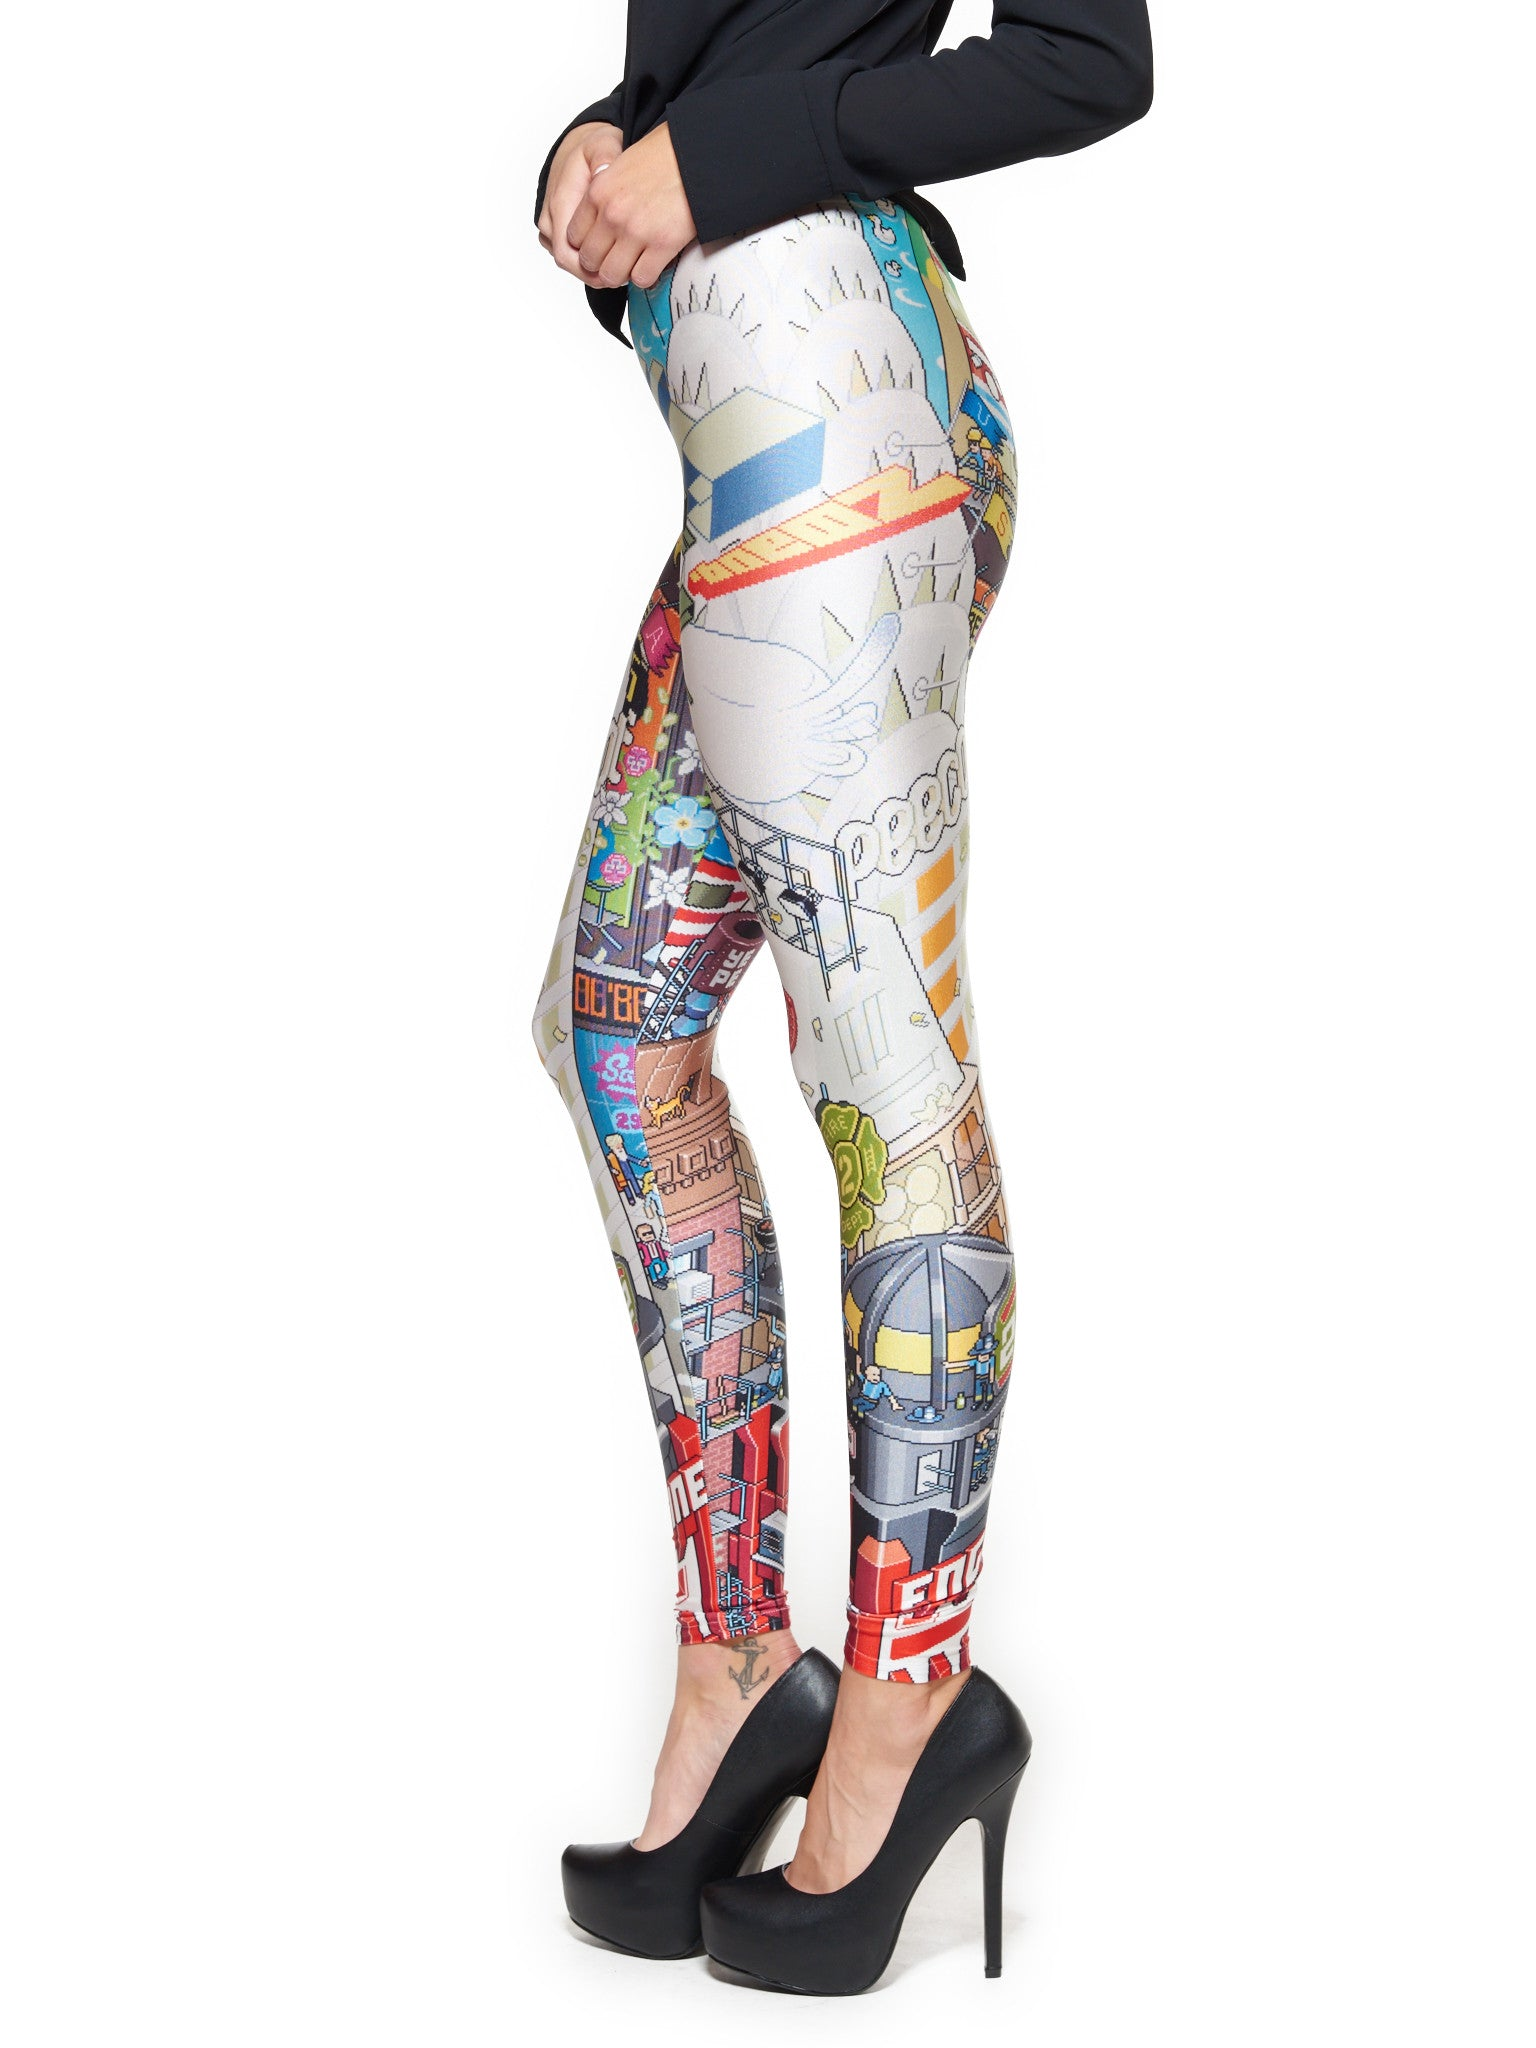 NYC Queen West Leggings - Nuvango Gallery & Goods - 2